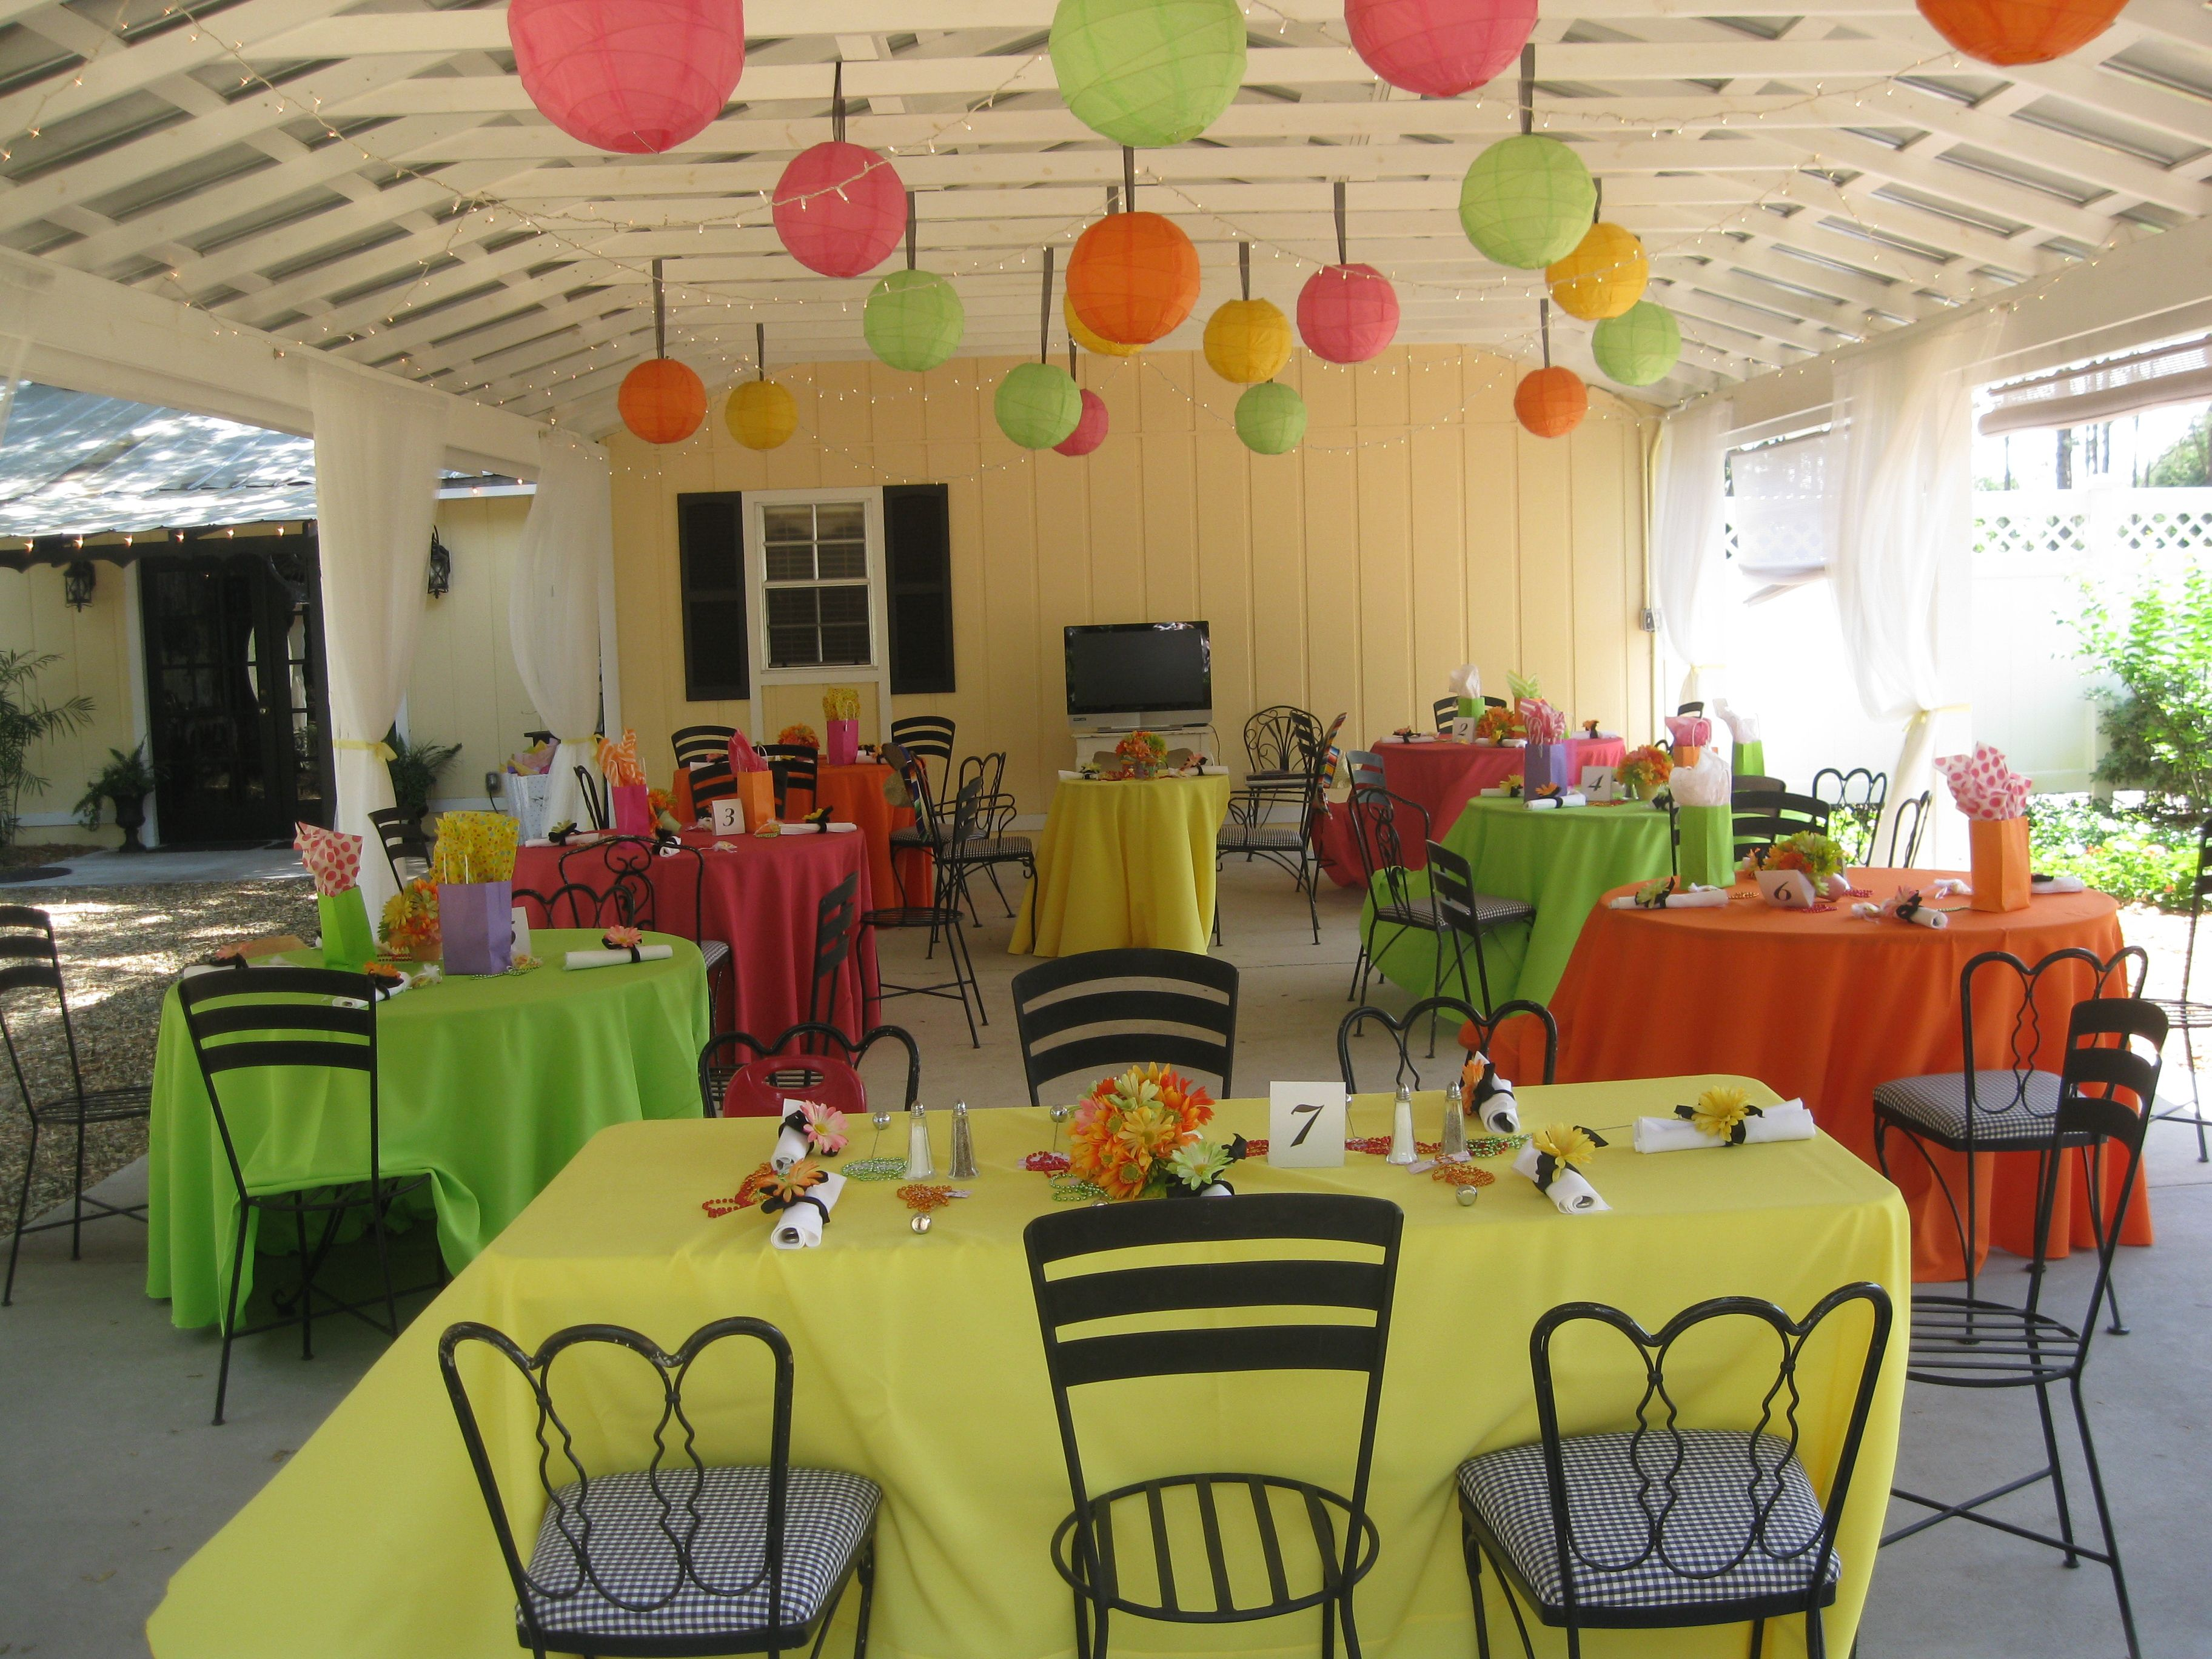 Ordinaire Colorful Tablecloths No Overlay